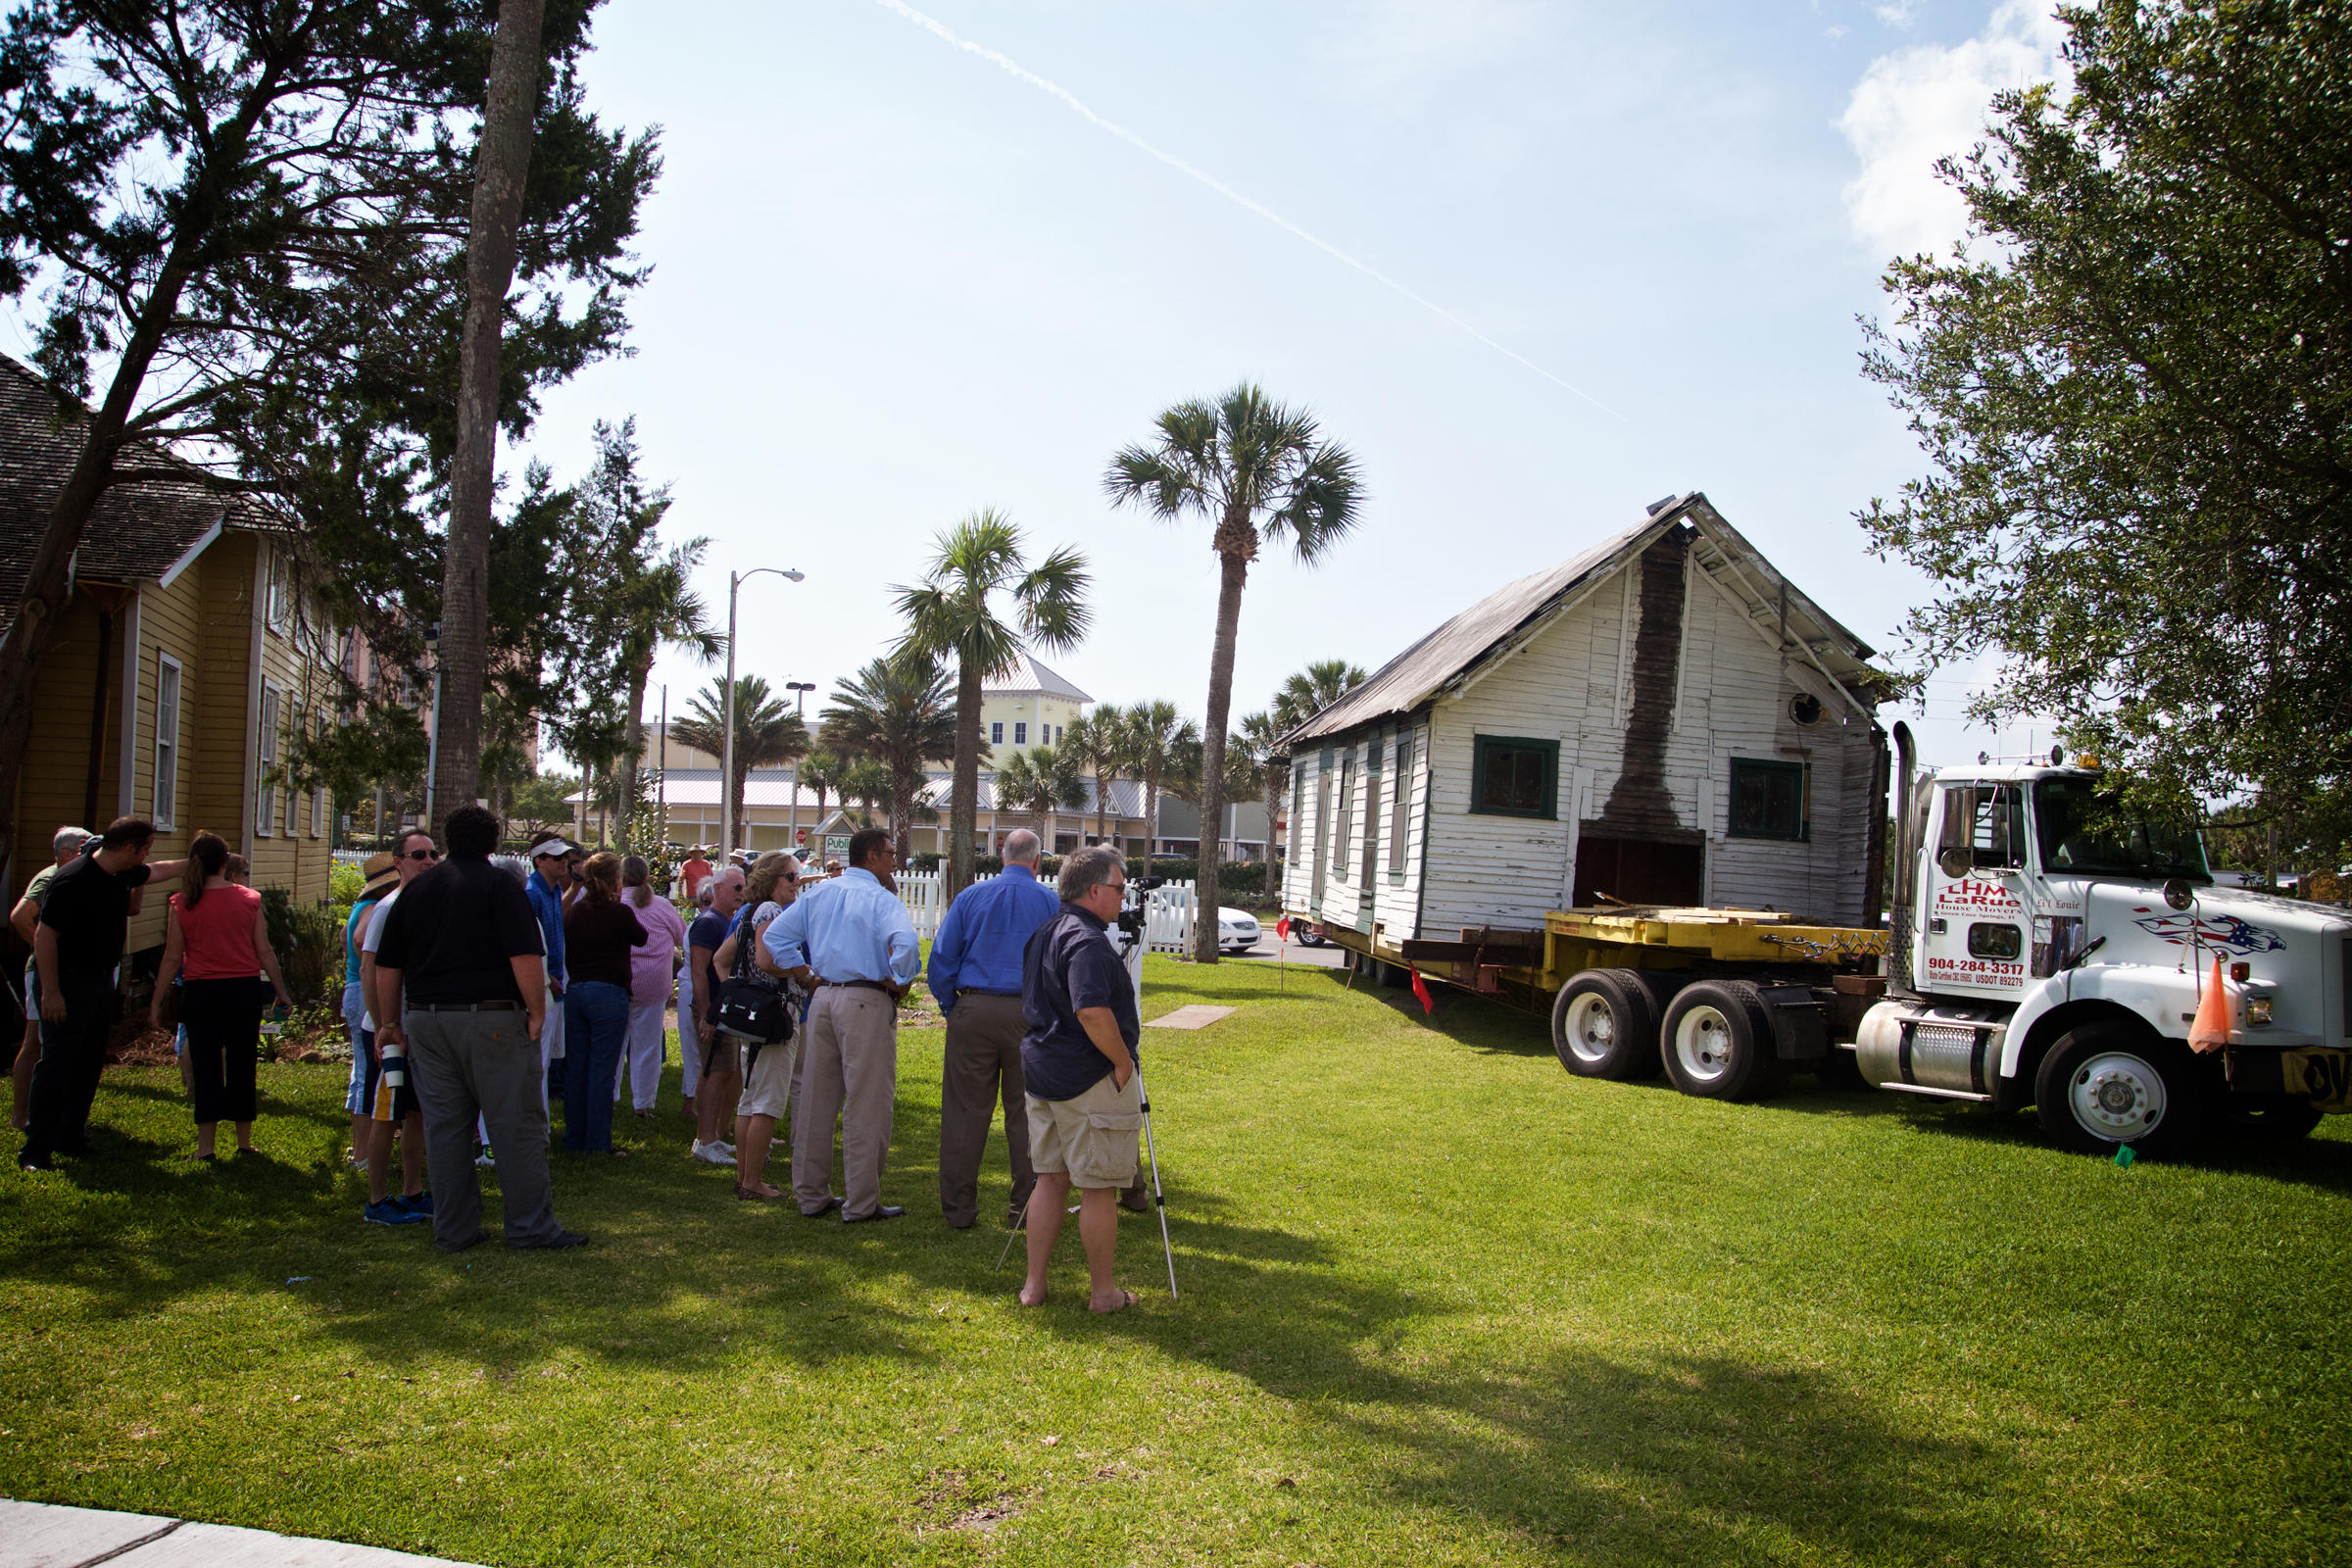 oldest cracker cabin on first coast moved to make way for crews move the 142 year old florida oesterreicher mccormick cracker style cabin from palm valley to the beaches museum and history park in jacksonville